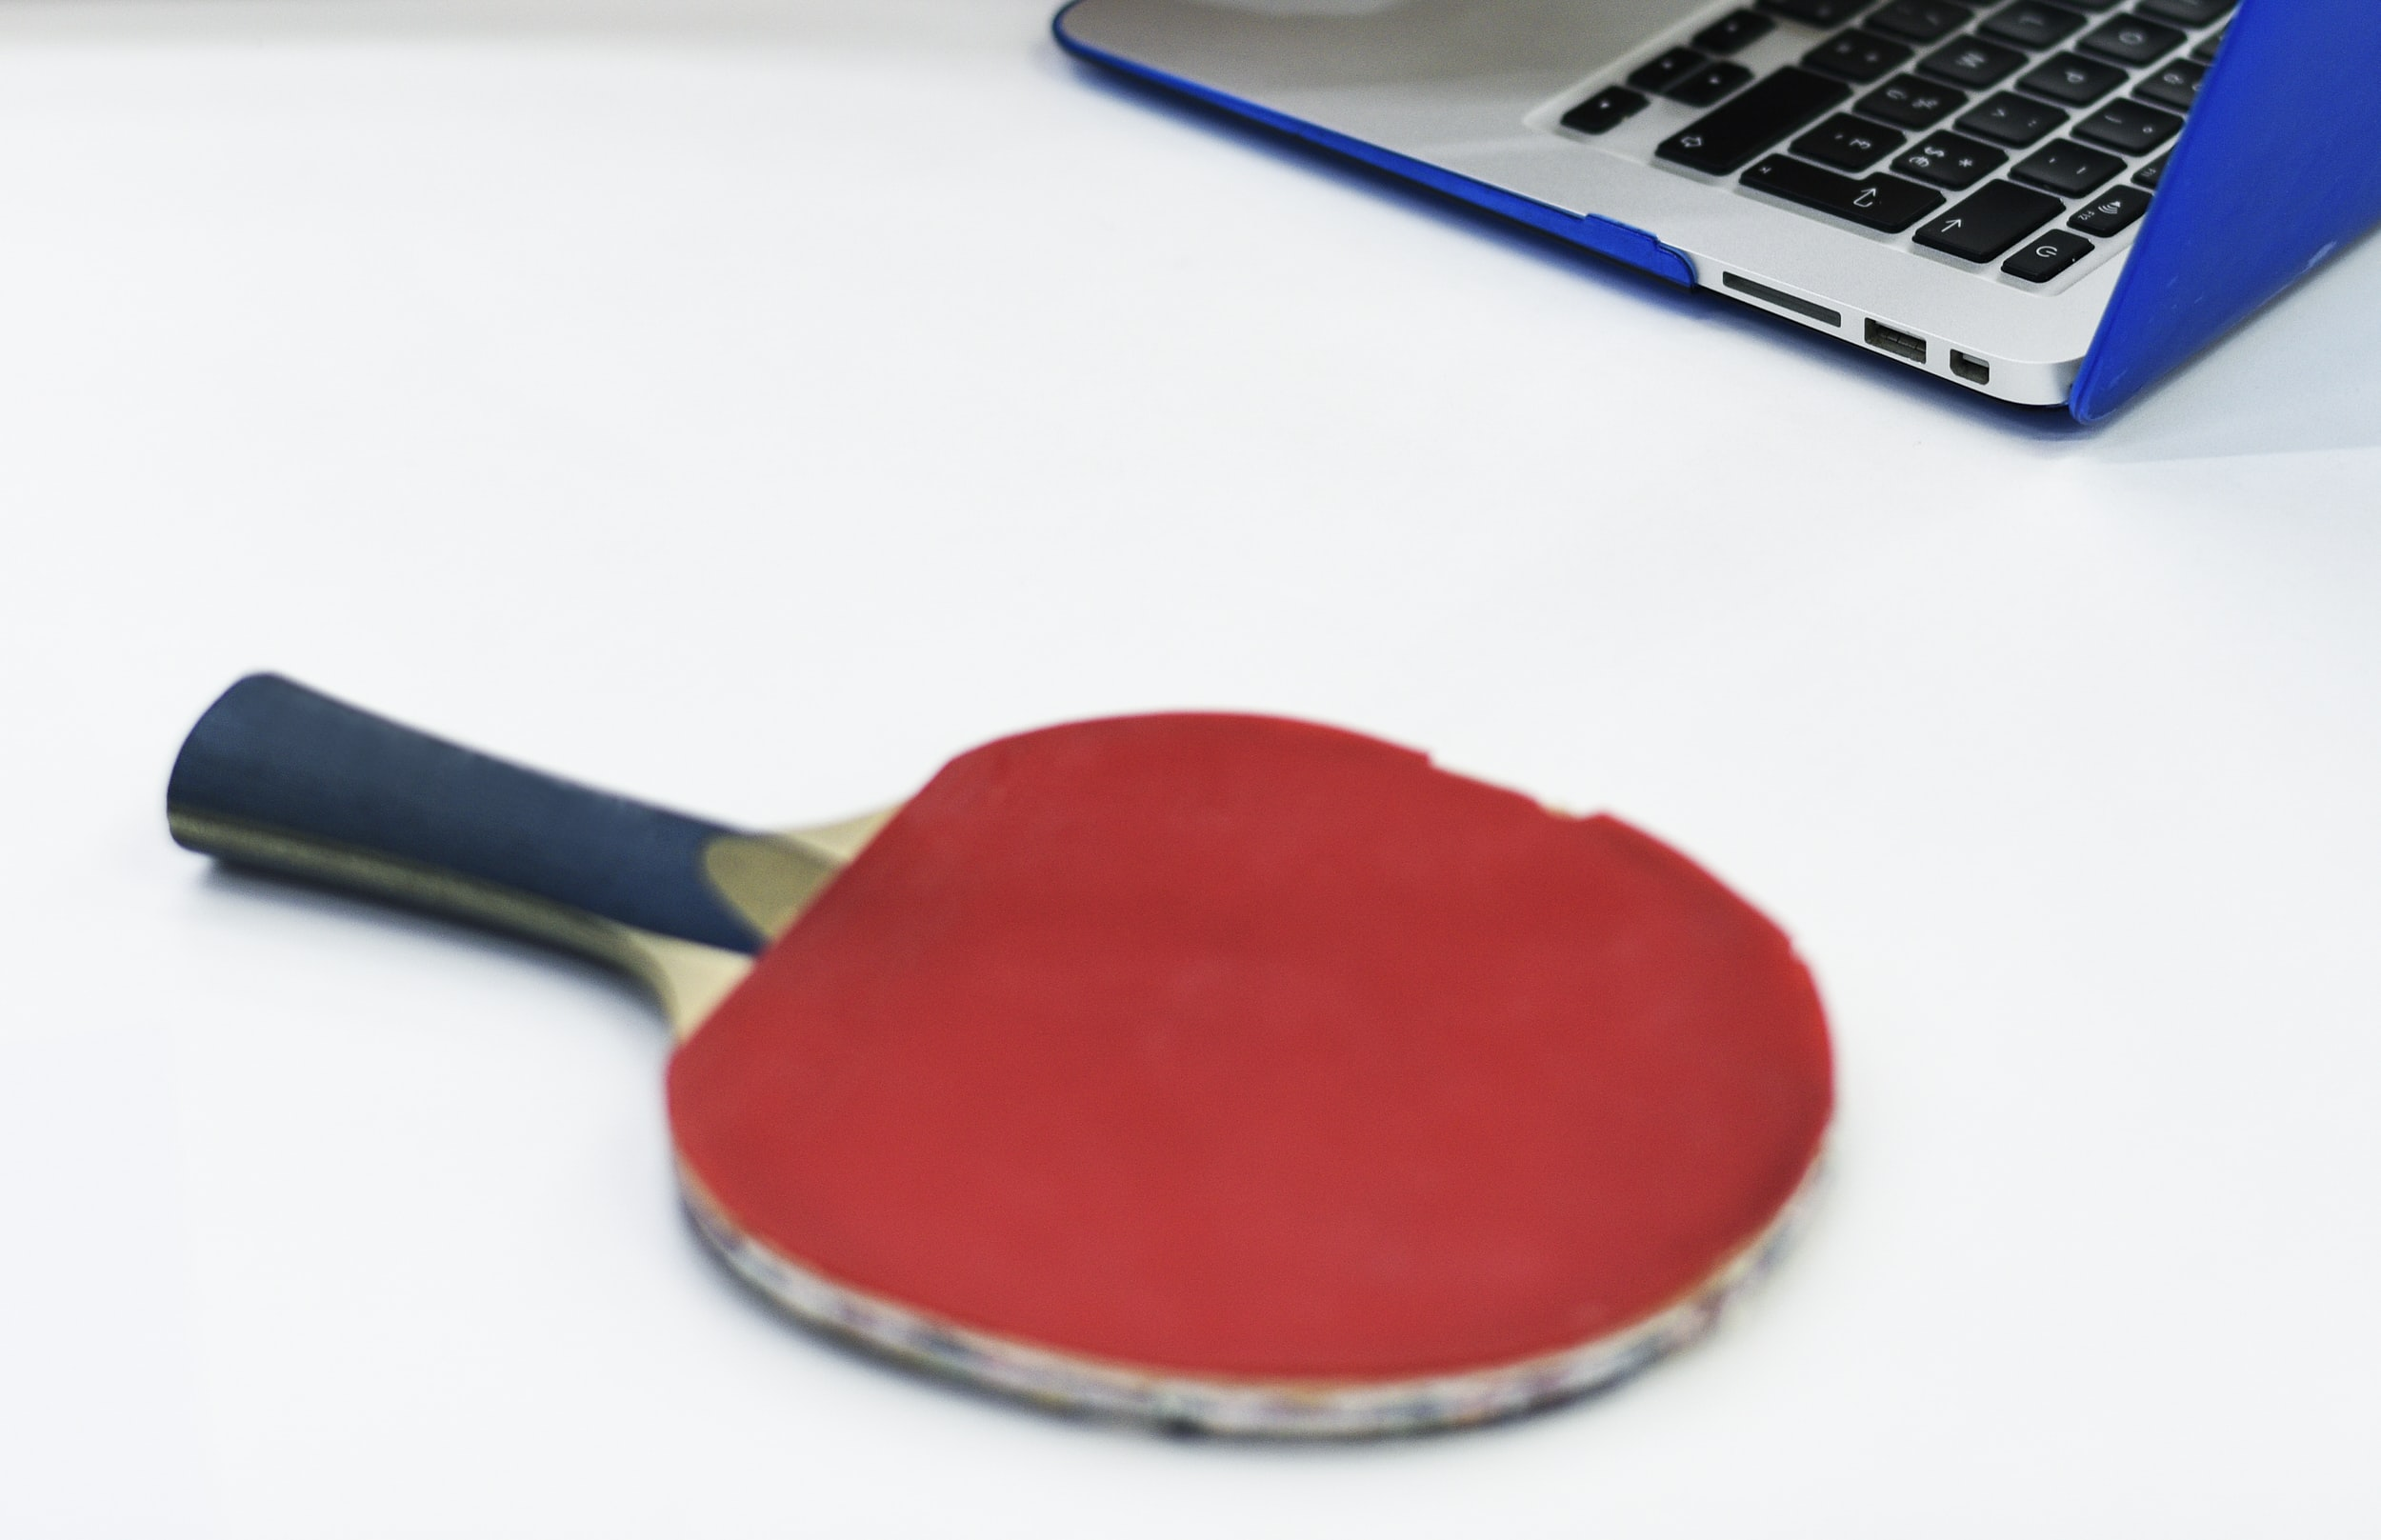 red and black pingpong racket beside of silver laptop computer